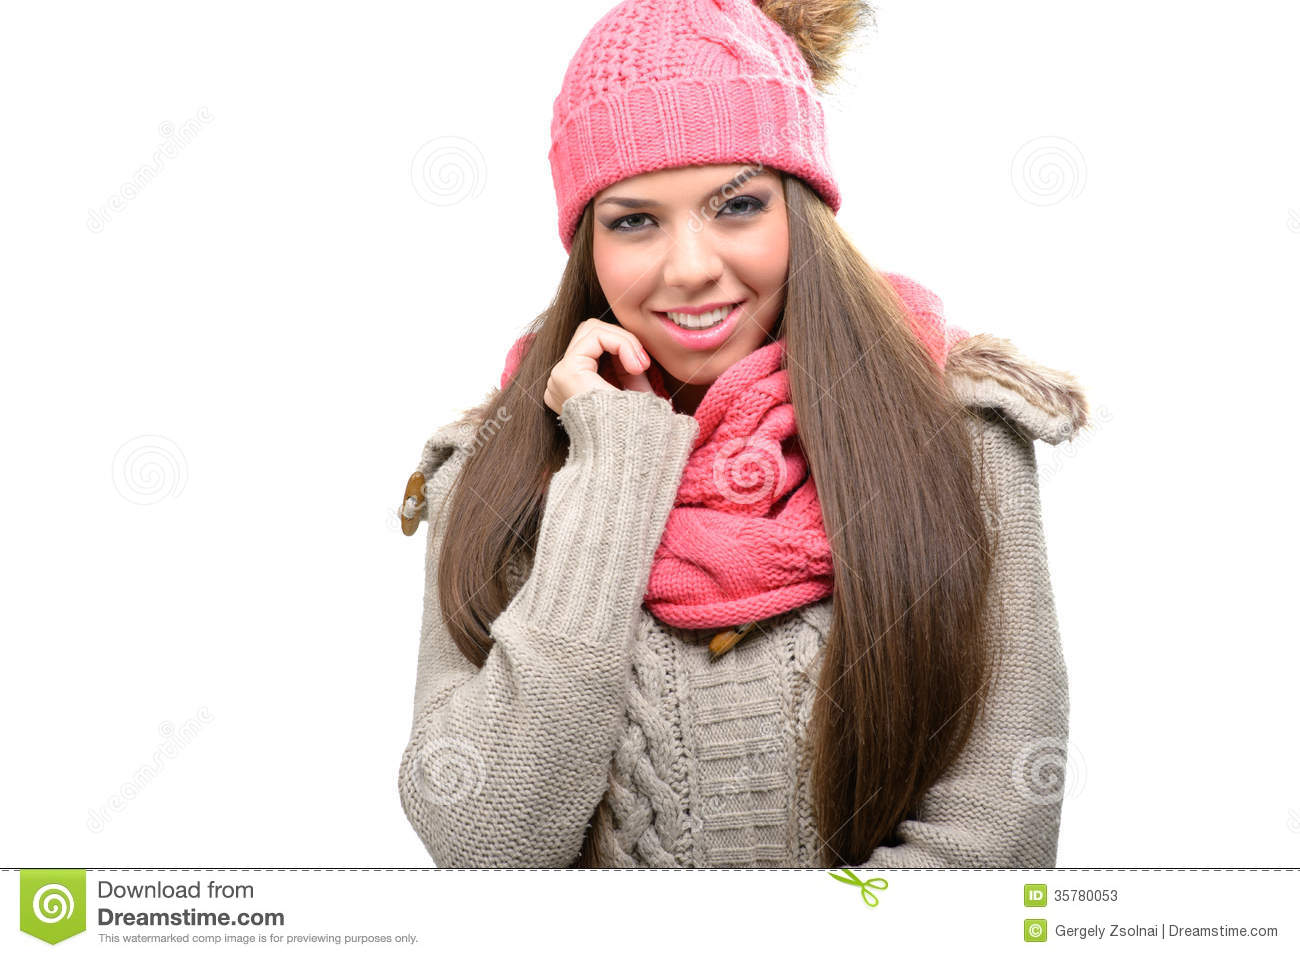 Fashionable winter clothes